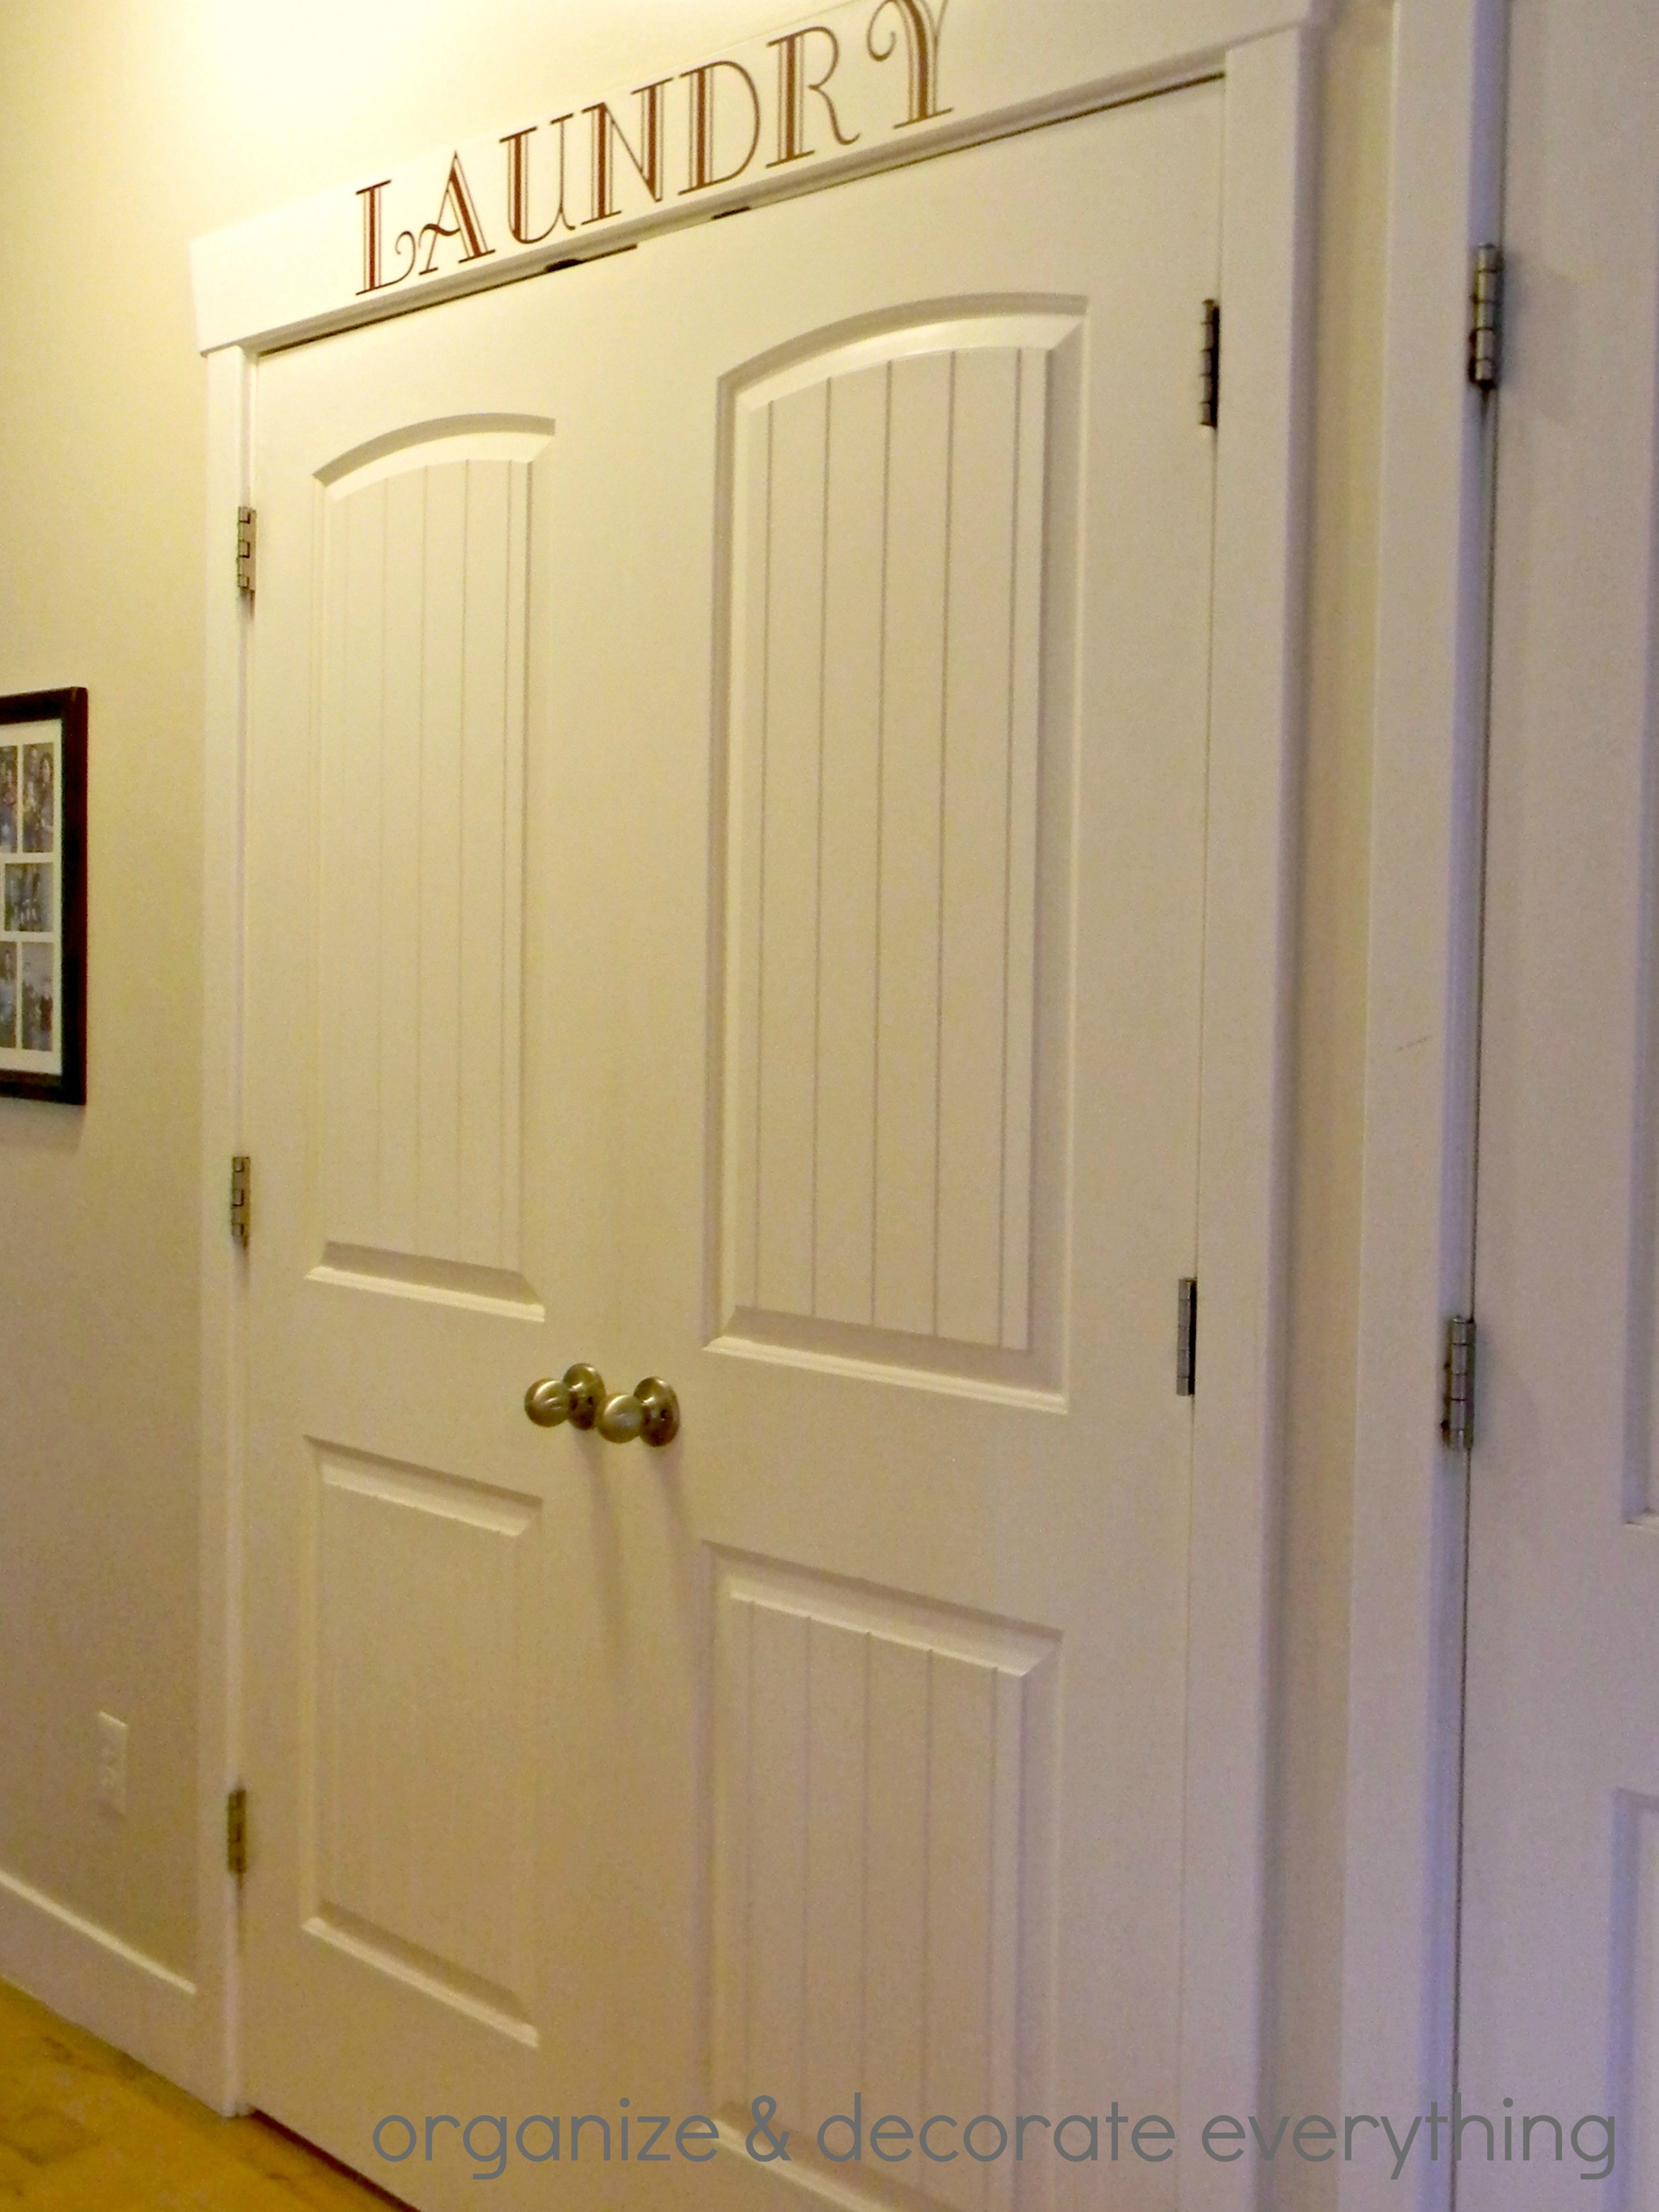 Best ideas about Laundry Room Doors . Save or Pin Organized space of the week Laundry closet Now.